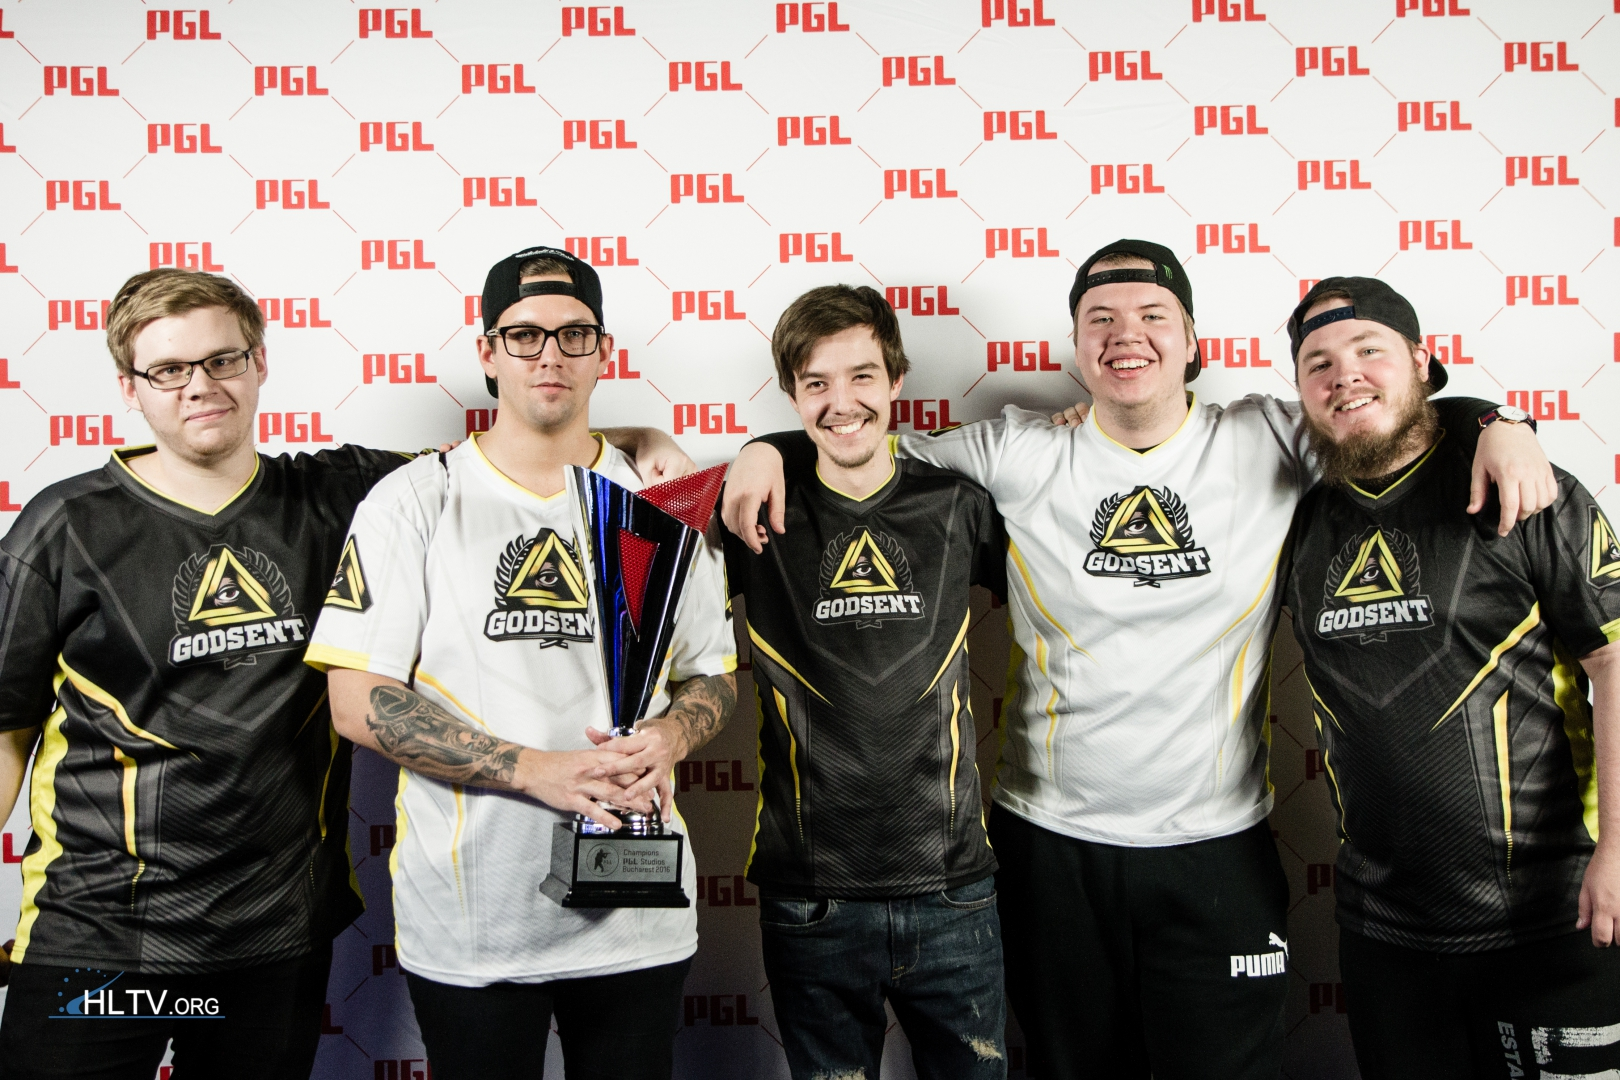 Godsent won the EU Minor.